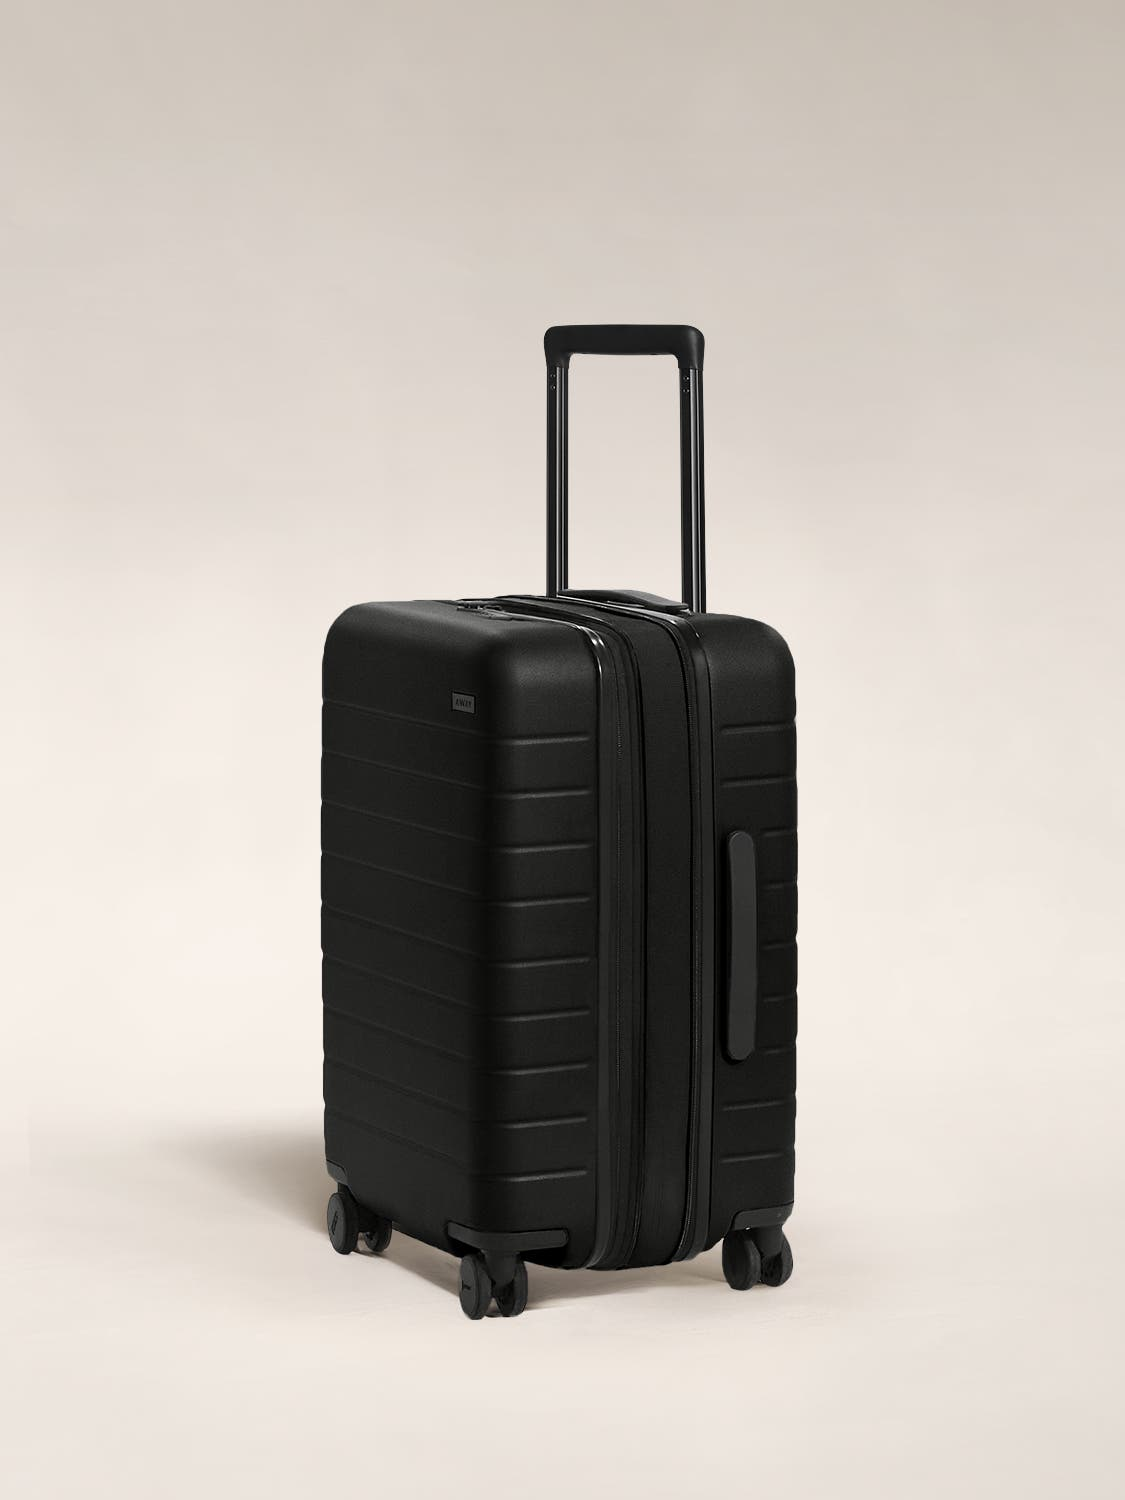 The Carry-On Flex in Black shown at an angle with raised telescoping handle.